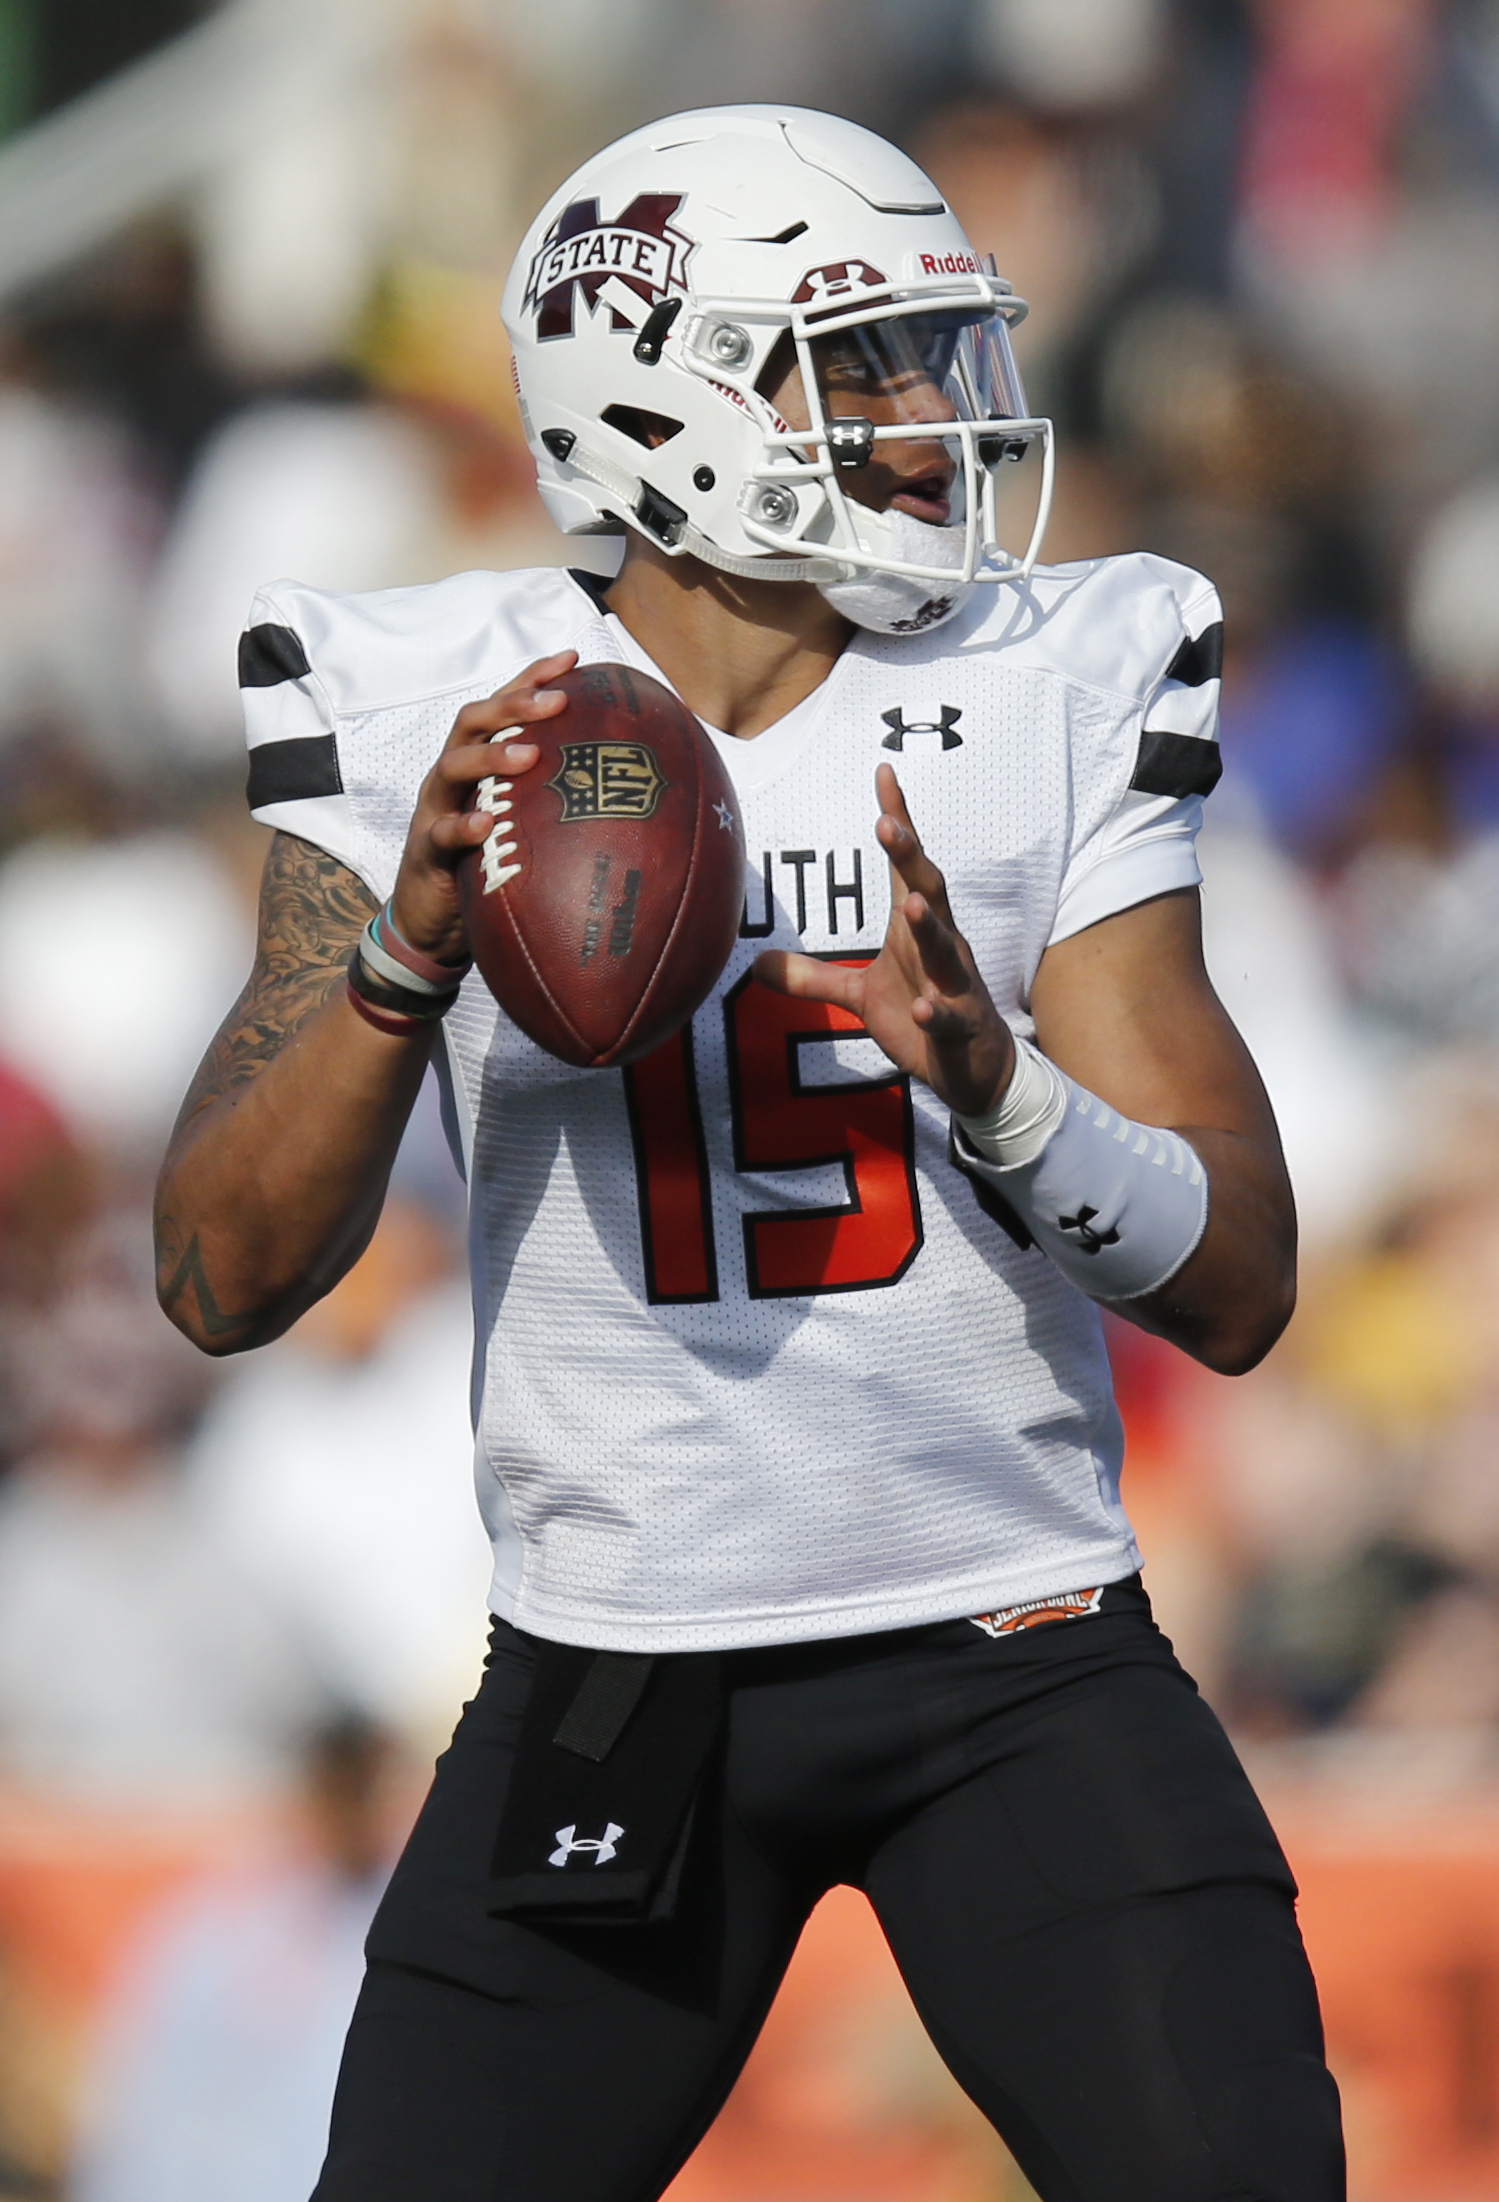 South Team quarterback Dak Prescott, of Mississippi State, looks to pass during first half of the Senior Bowl NCAA college football game, Saturday, Jan. 30, 2016, at LaddPeebles Stadium, in Mobile, Ala. (AP Photo/Brynn Anderson)